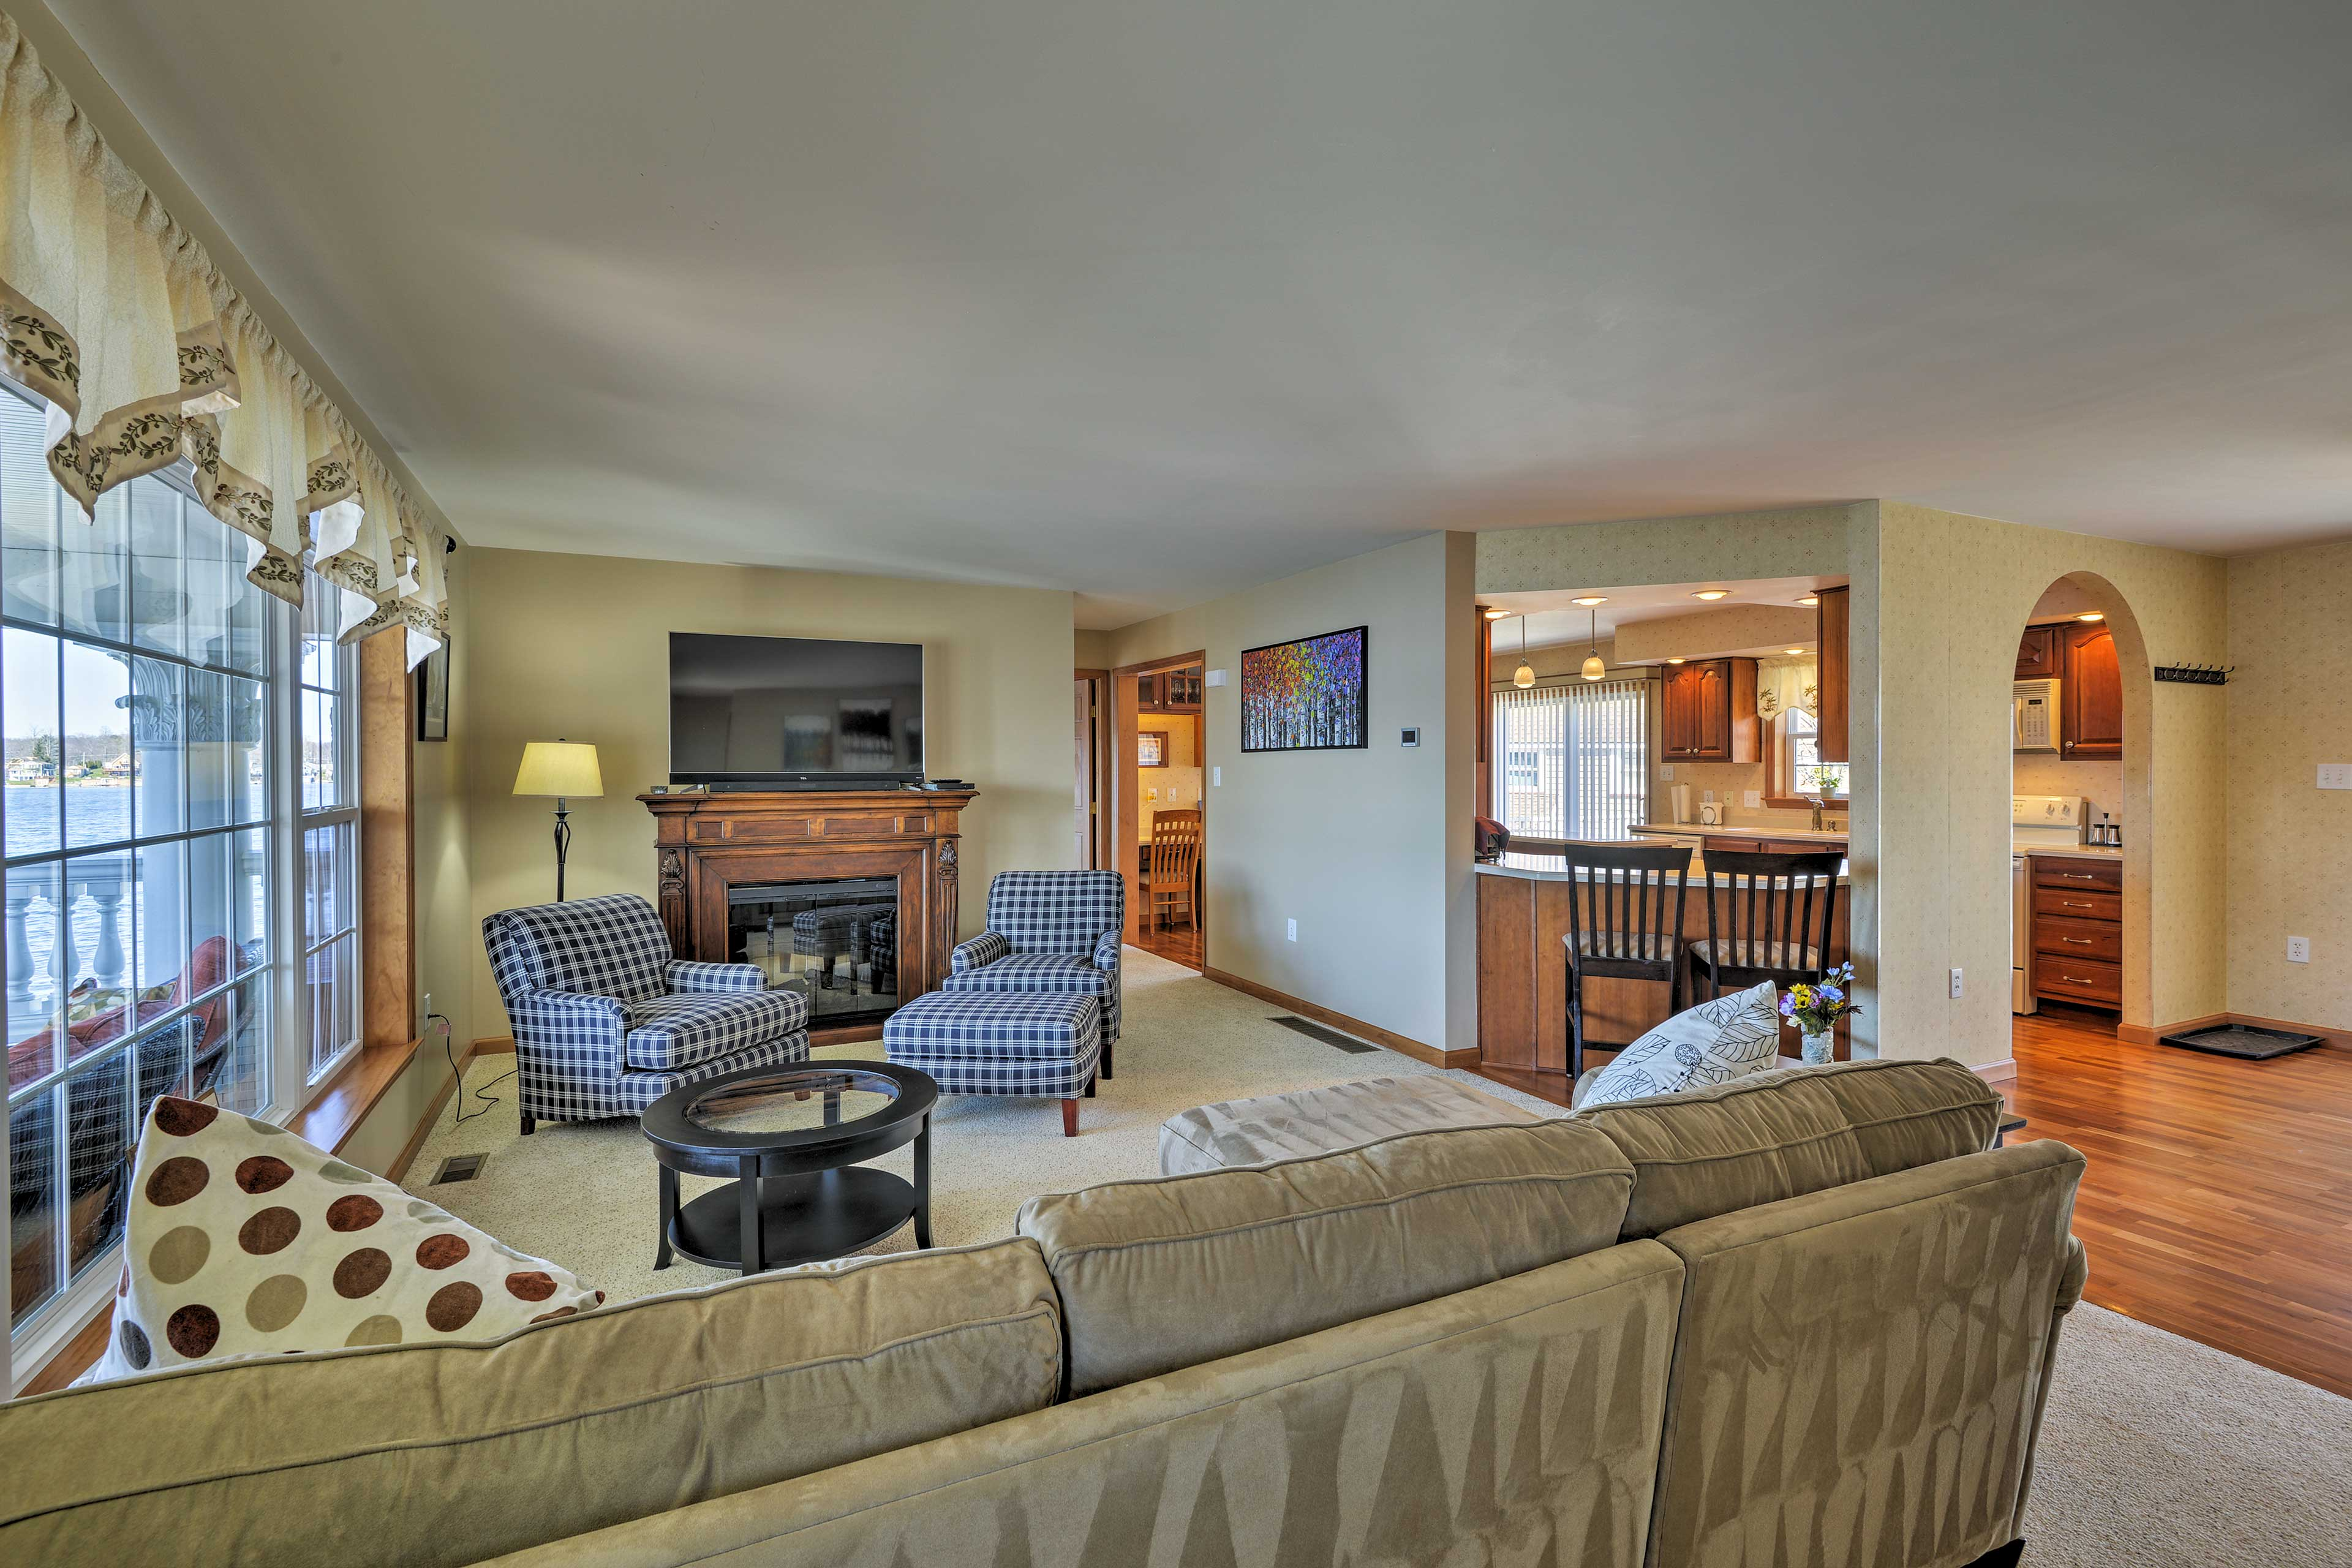 The open living space is perfect for conversing with loved ones.